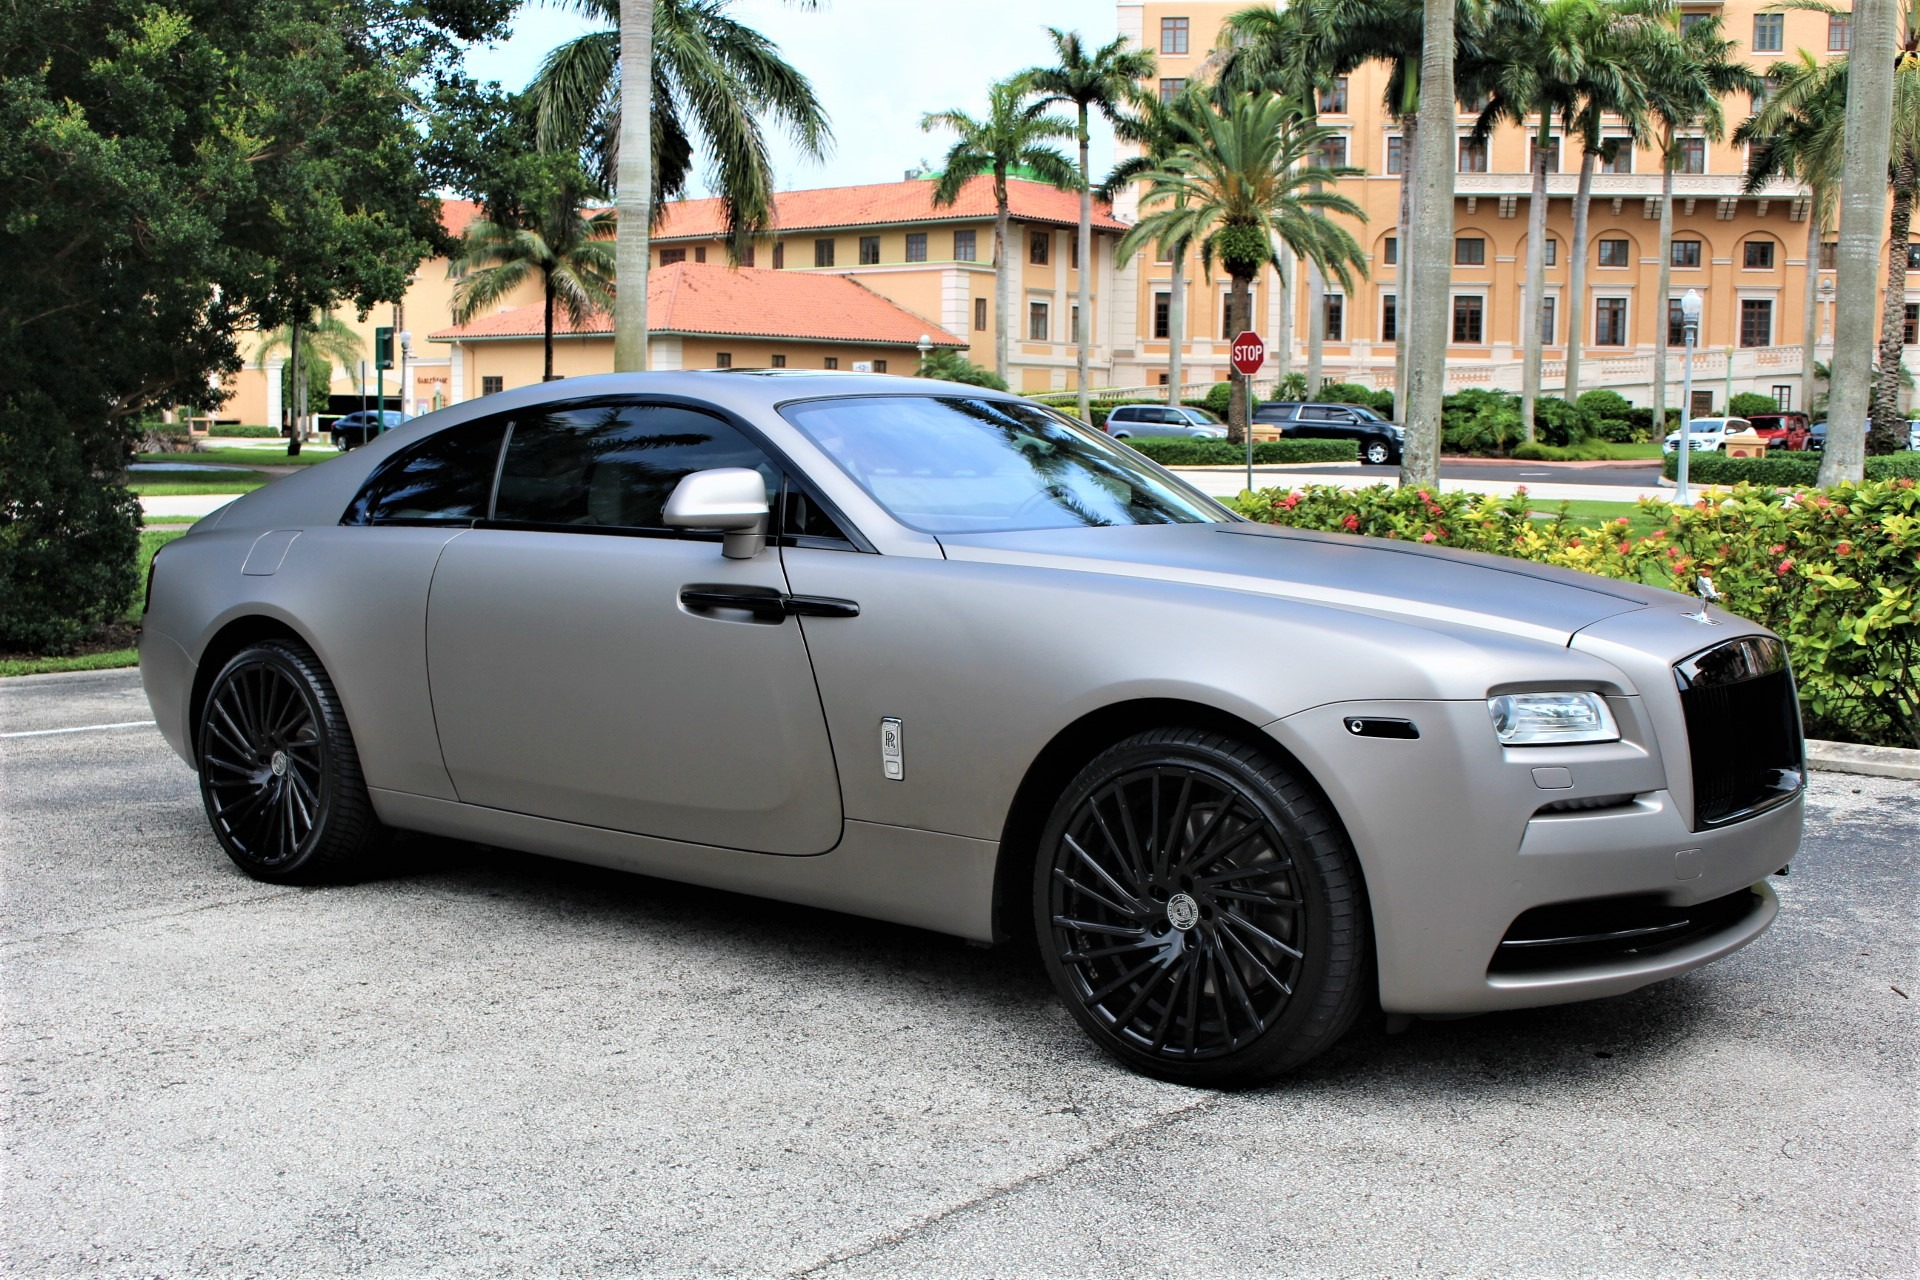 Used 2015 Rolls-Royce Wraith for sale $168,850 at The Gables Sports Cars in Miami FL 33146 3